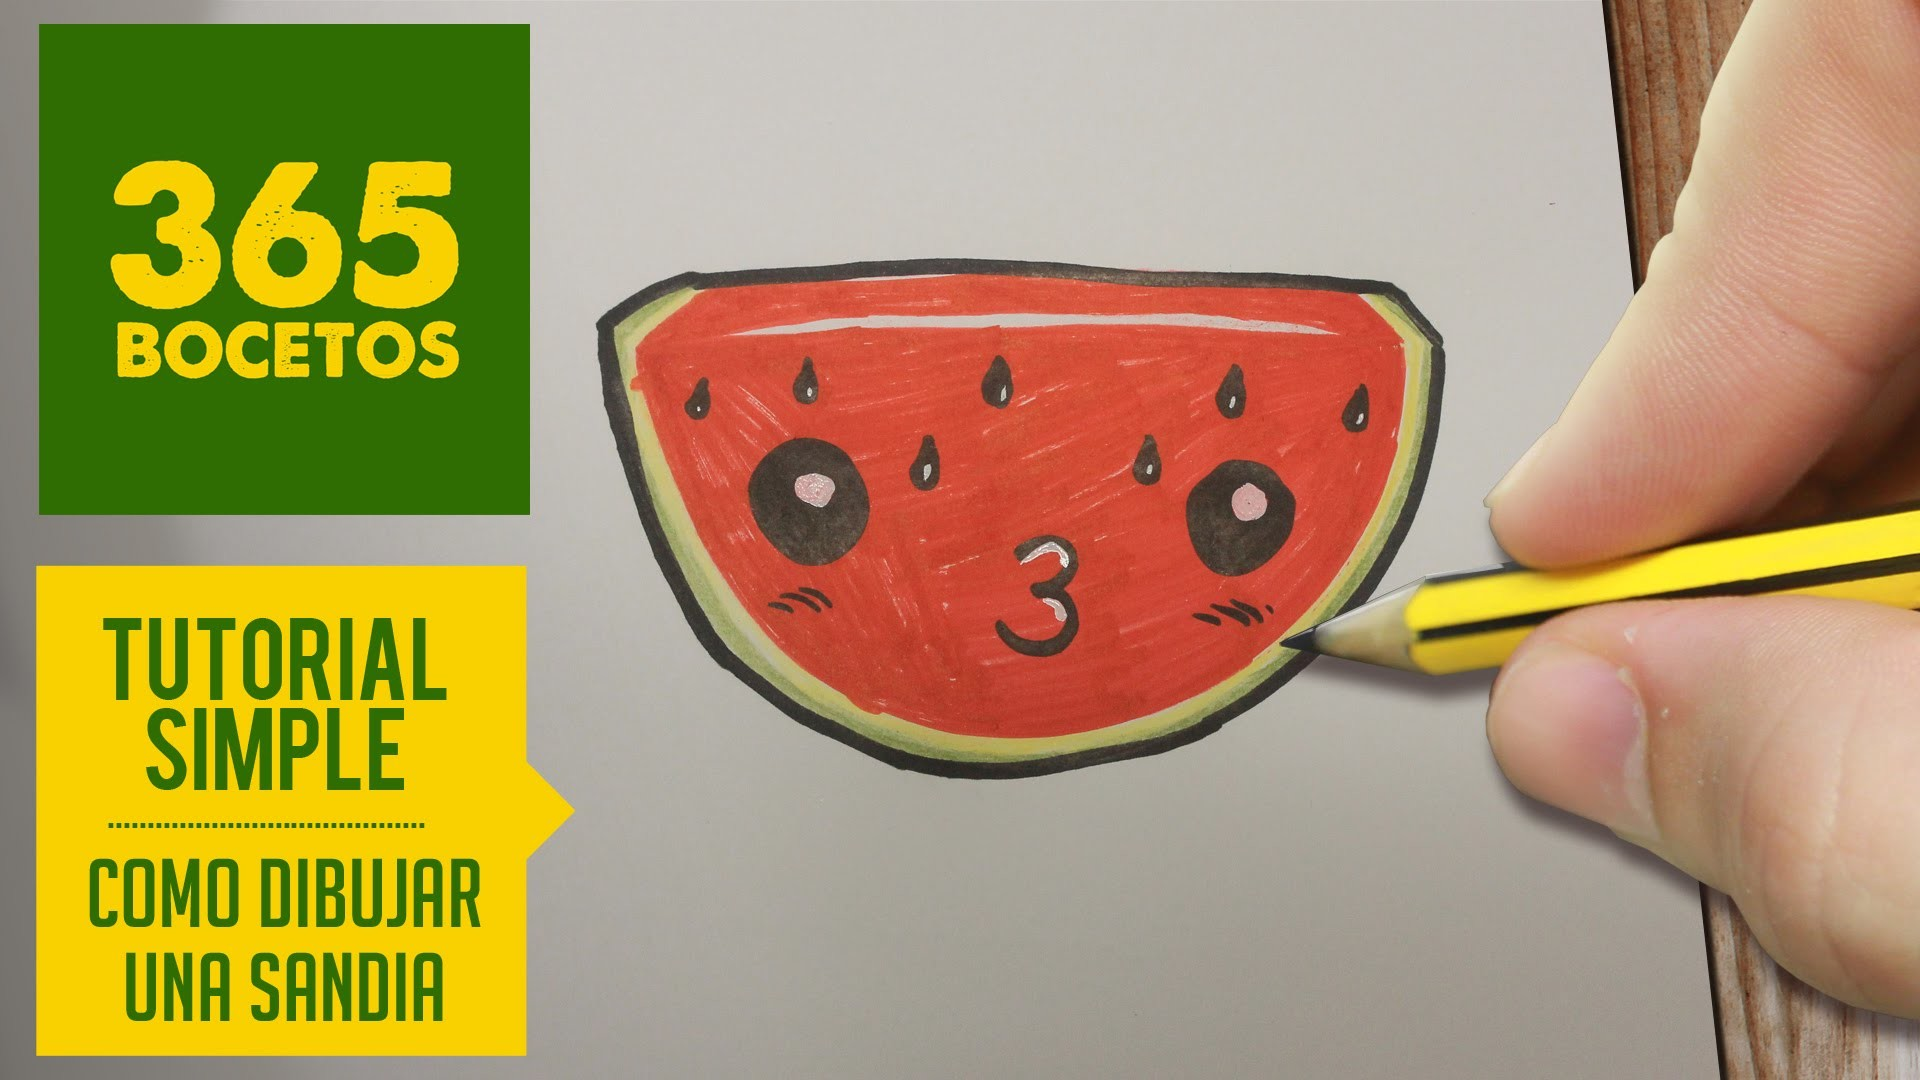 COMO DIBUJAR UNA SANDIA KAWAII PASO A PASO - Dibujos kawaii faciles - How to draw a watermelon